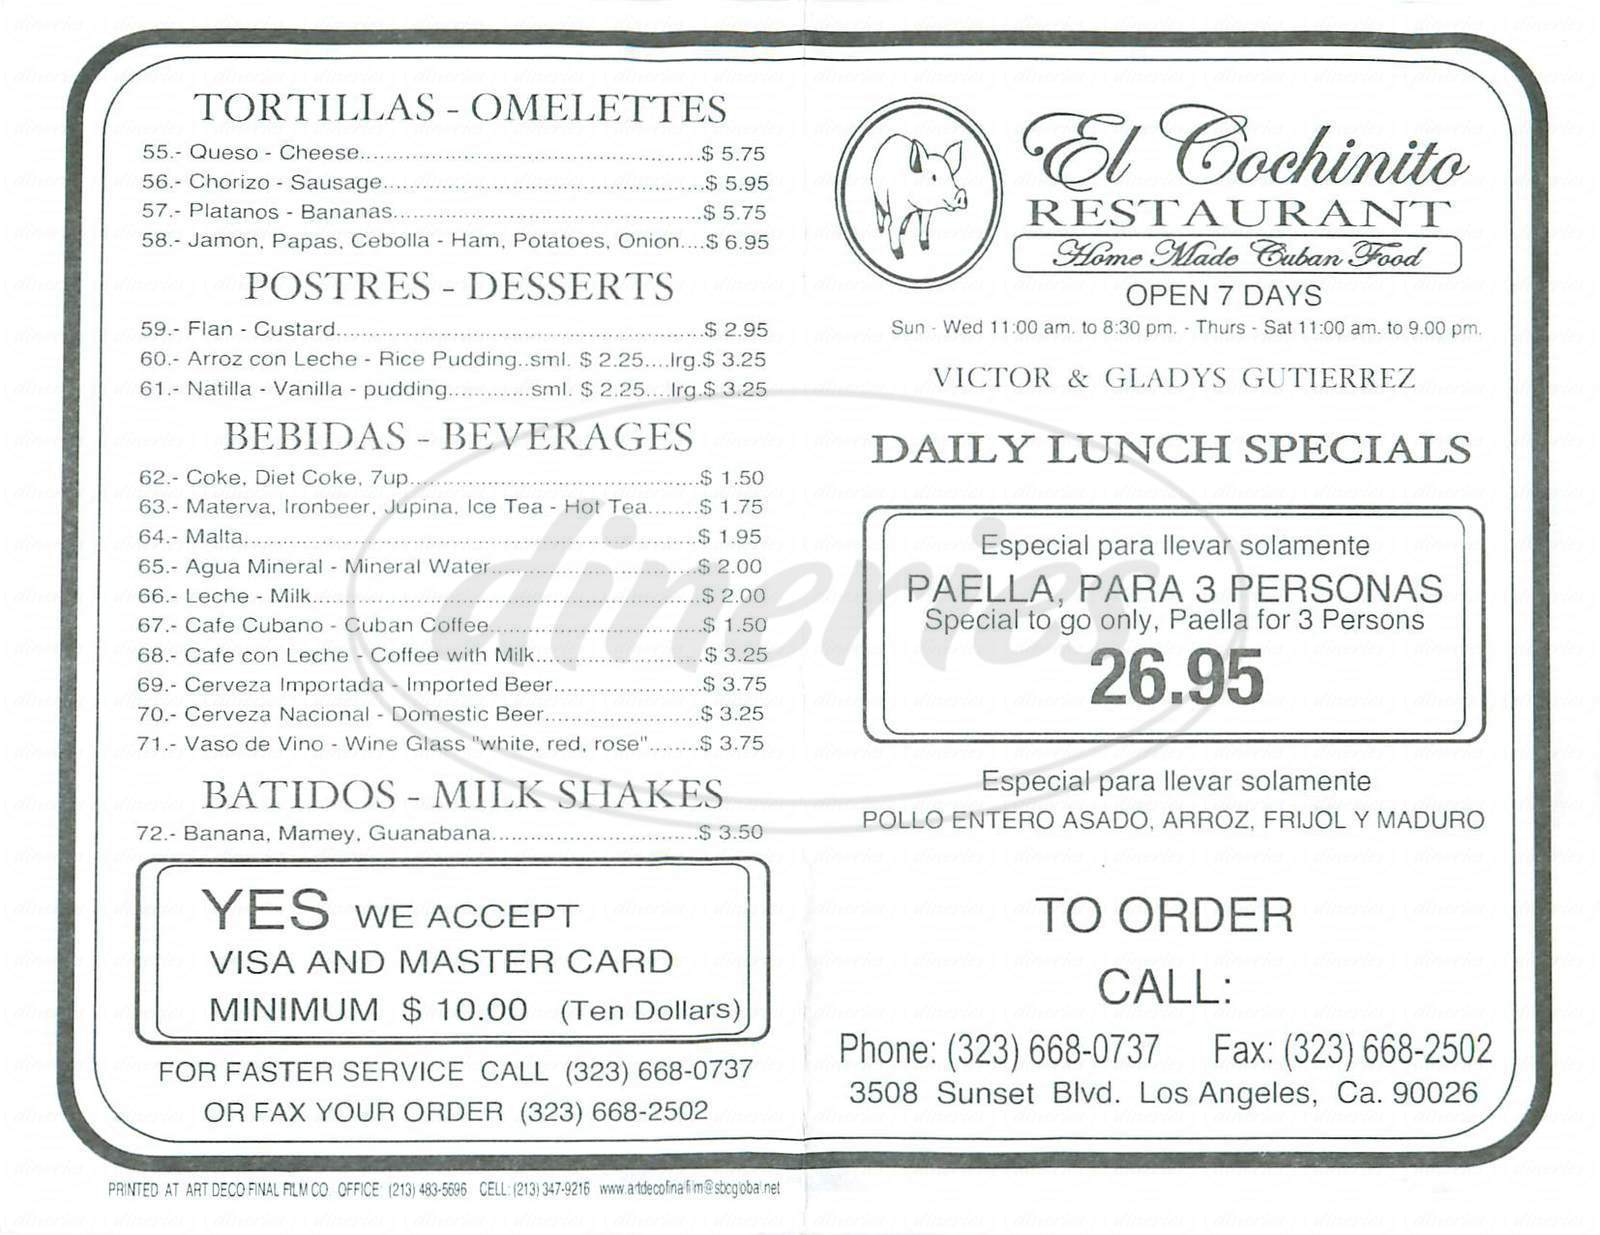 menu for El Cochinito Restaurant